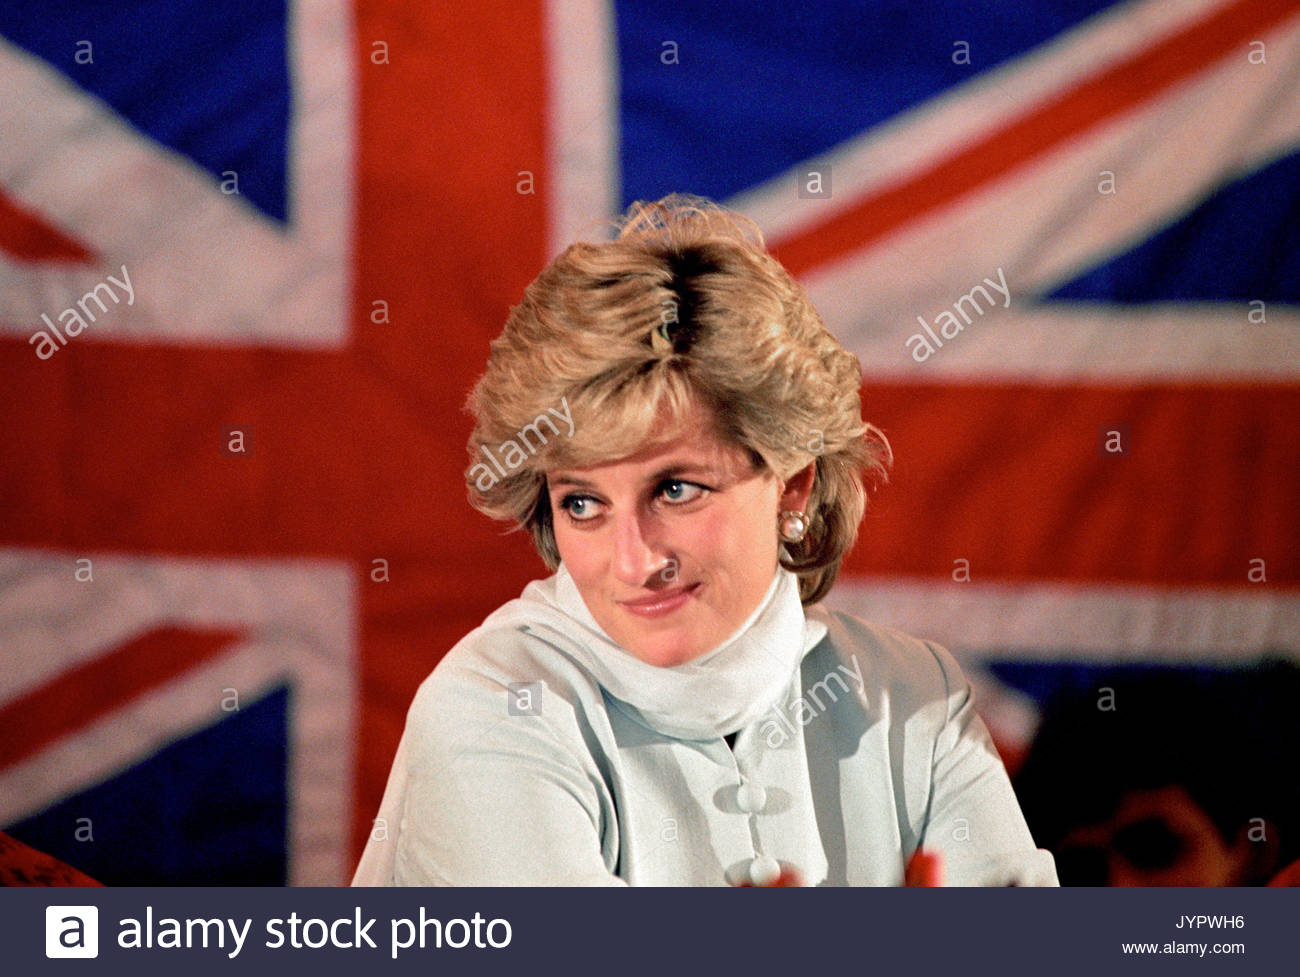 """Embargoed to 0001 Monday August 21 File photo dated 22/02/96 of Diana, Princess of Wales whose warmth, compassion and empathy for those she met earned her the description the """"people's princess"""". - Stock Image"""